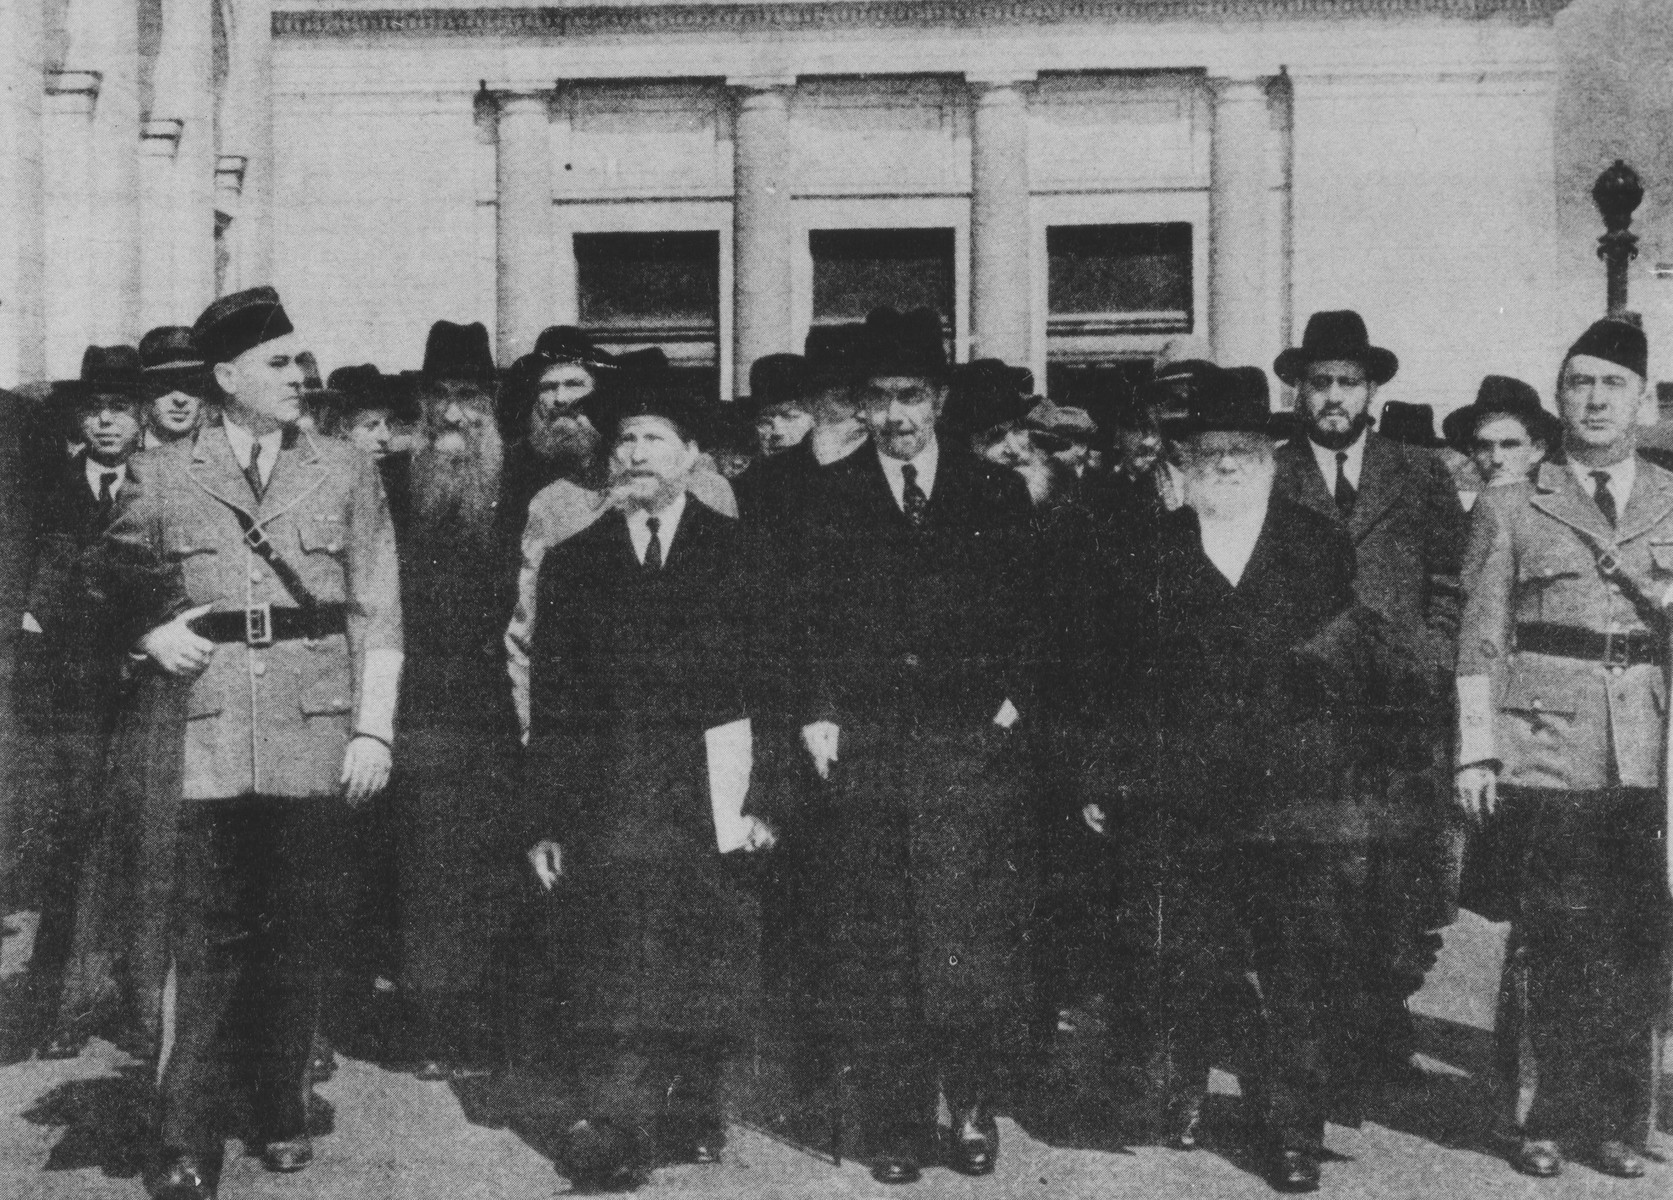 Rabbi Eliezer Silver (front row, second from left) leads a march of Orthodox rabbis to the Capitol to bring attention to the plight of European Jewry.